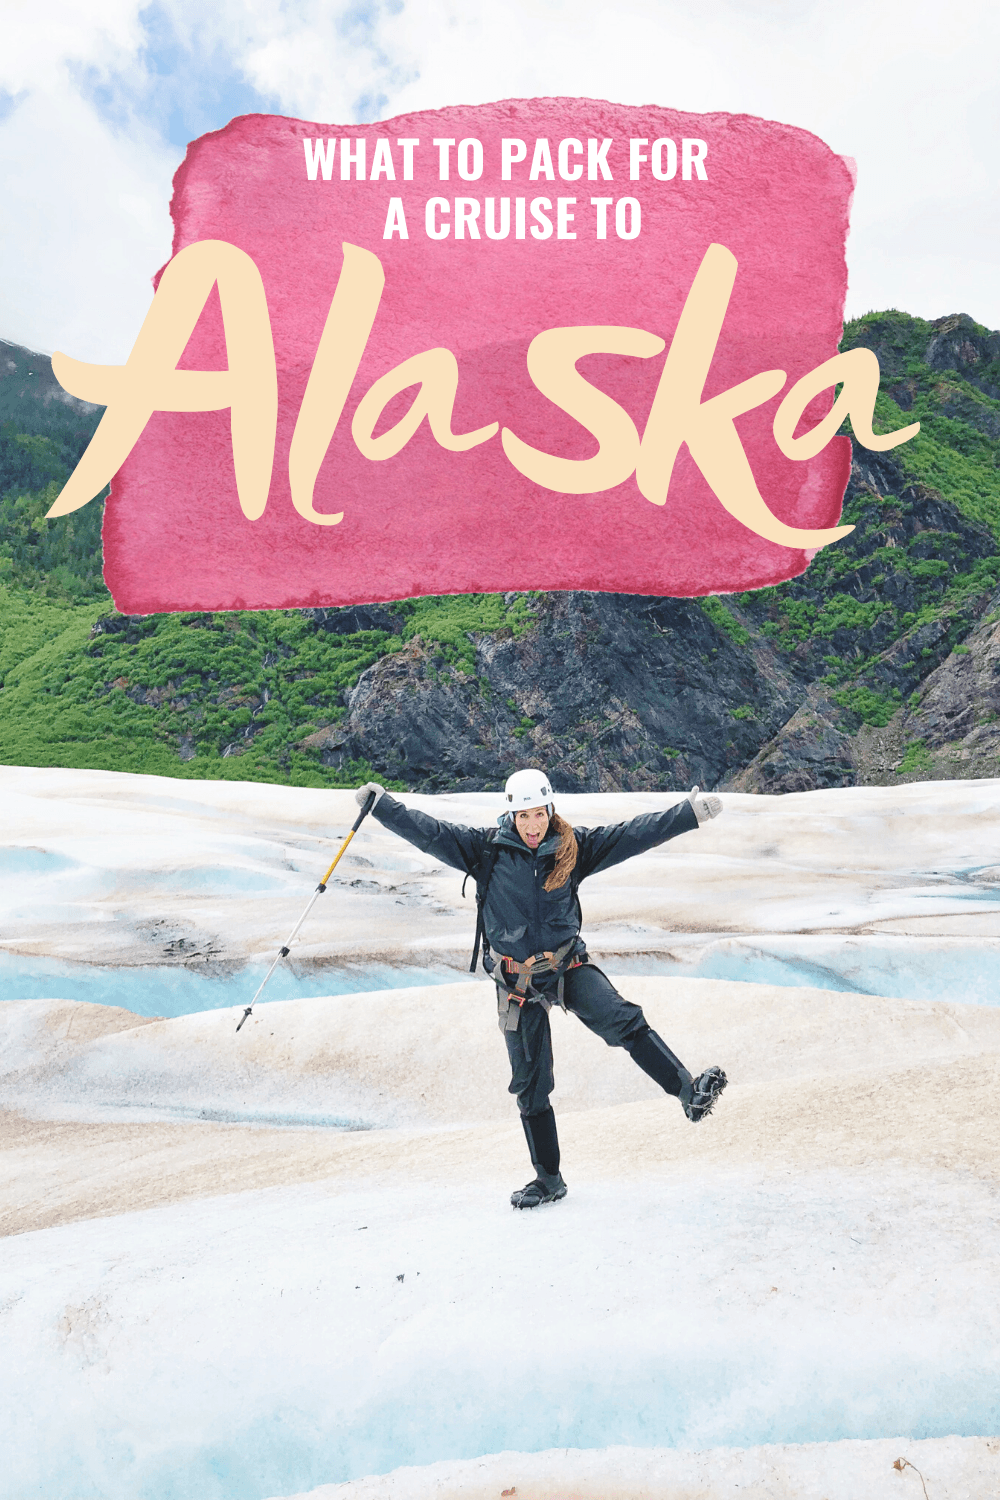 What To Pack For a Cruise To Alaska